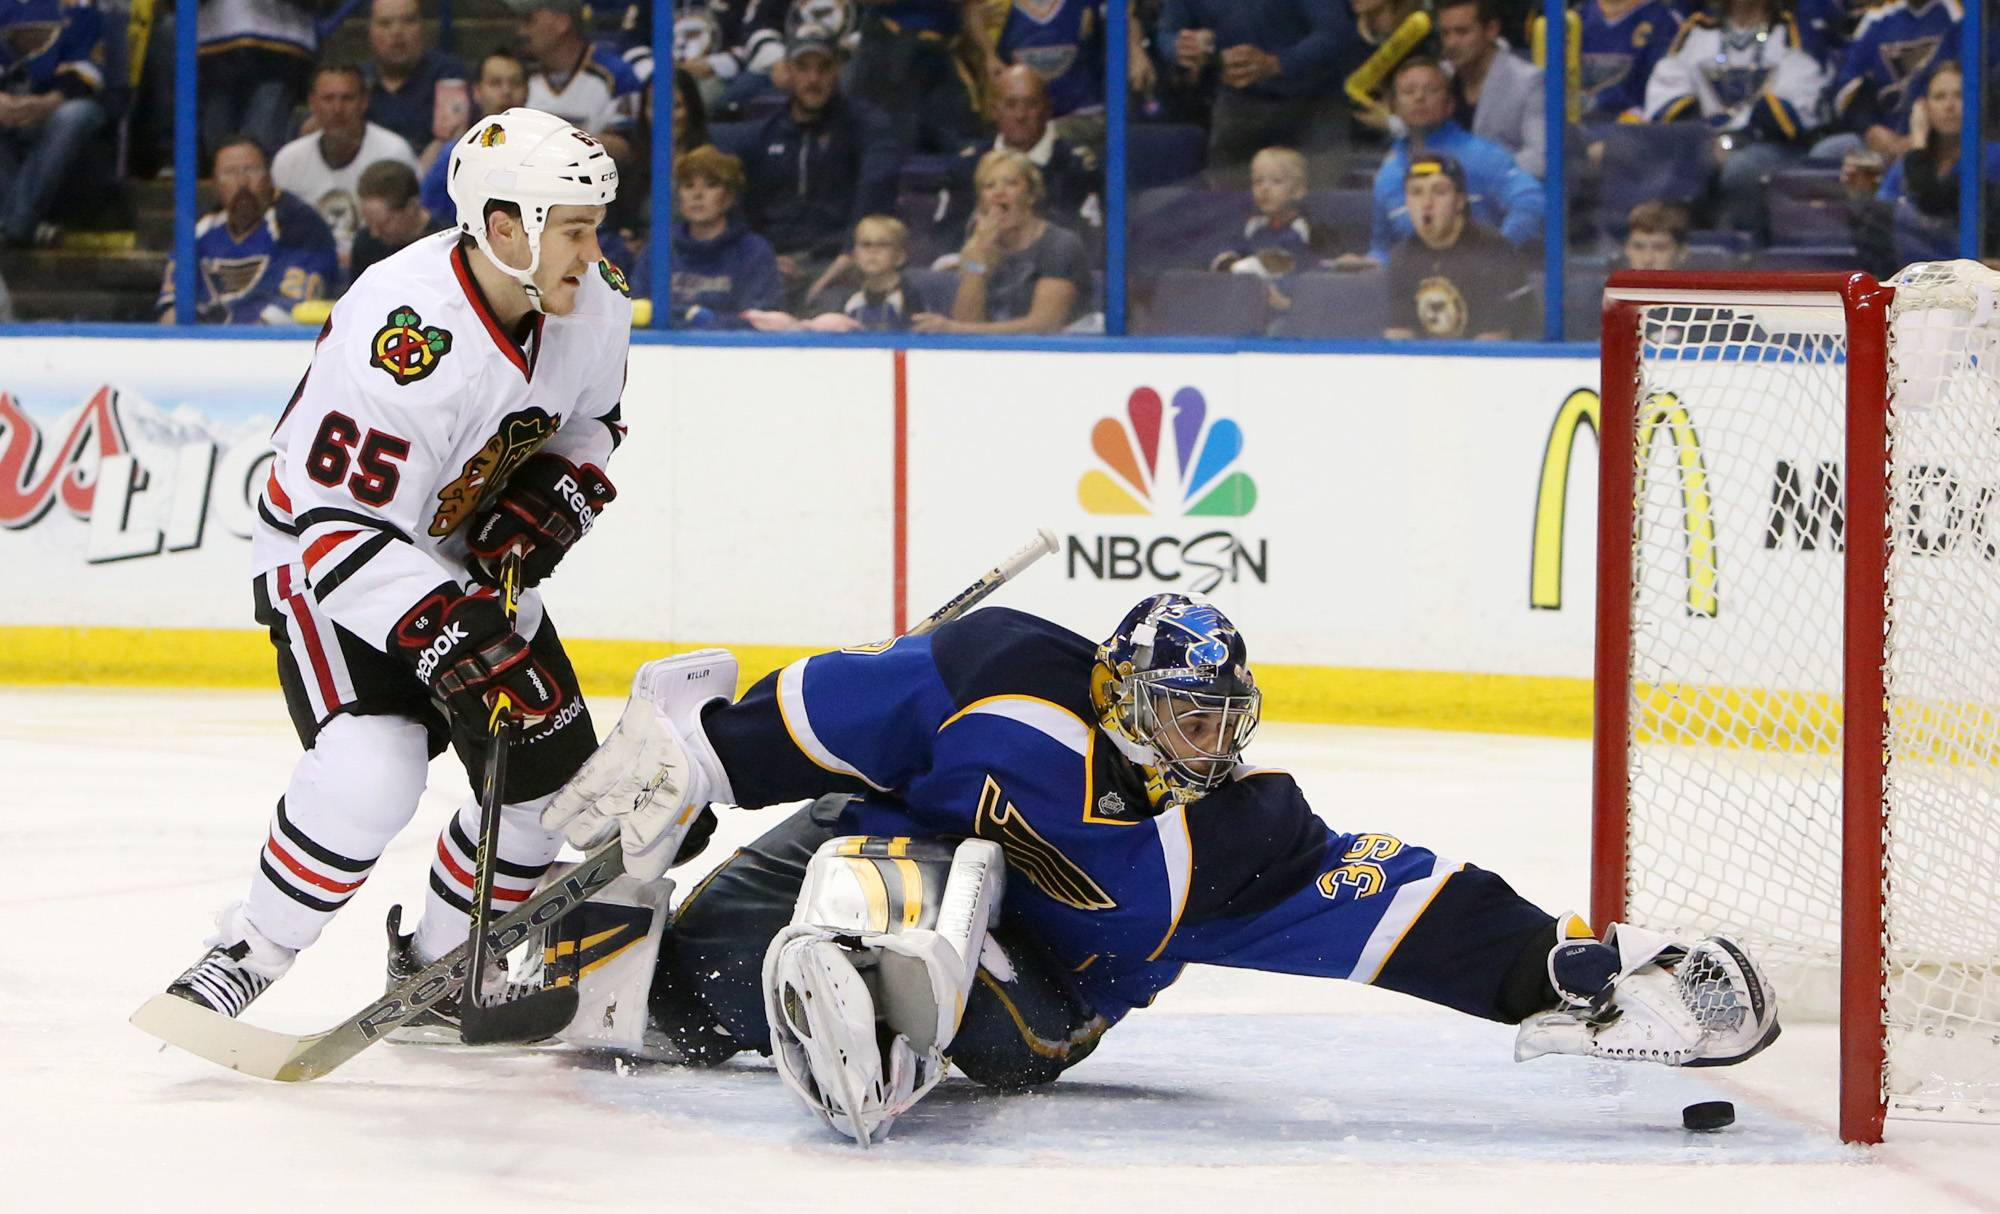 St. Louis Blues goaltender Ryan Miller reaches back just in time to prevent a goal as Chicago Blackhawks center Andrew Shaw pressures in second period action.